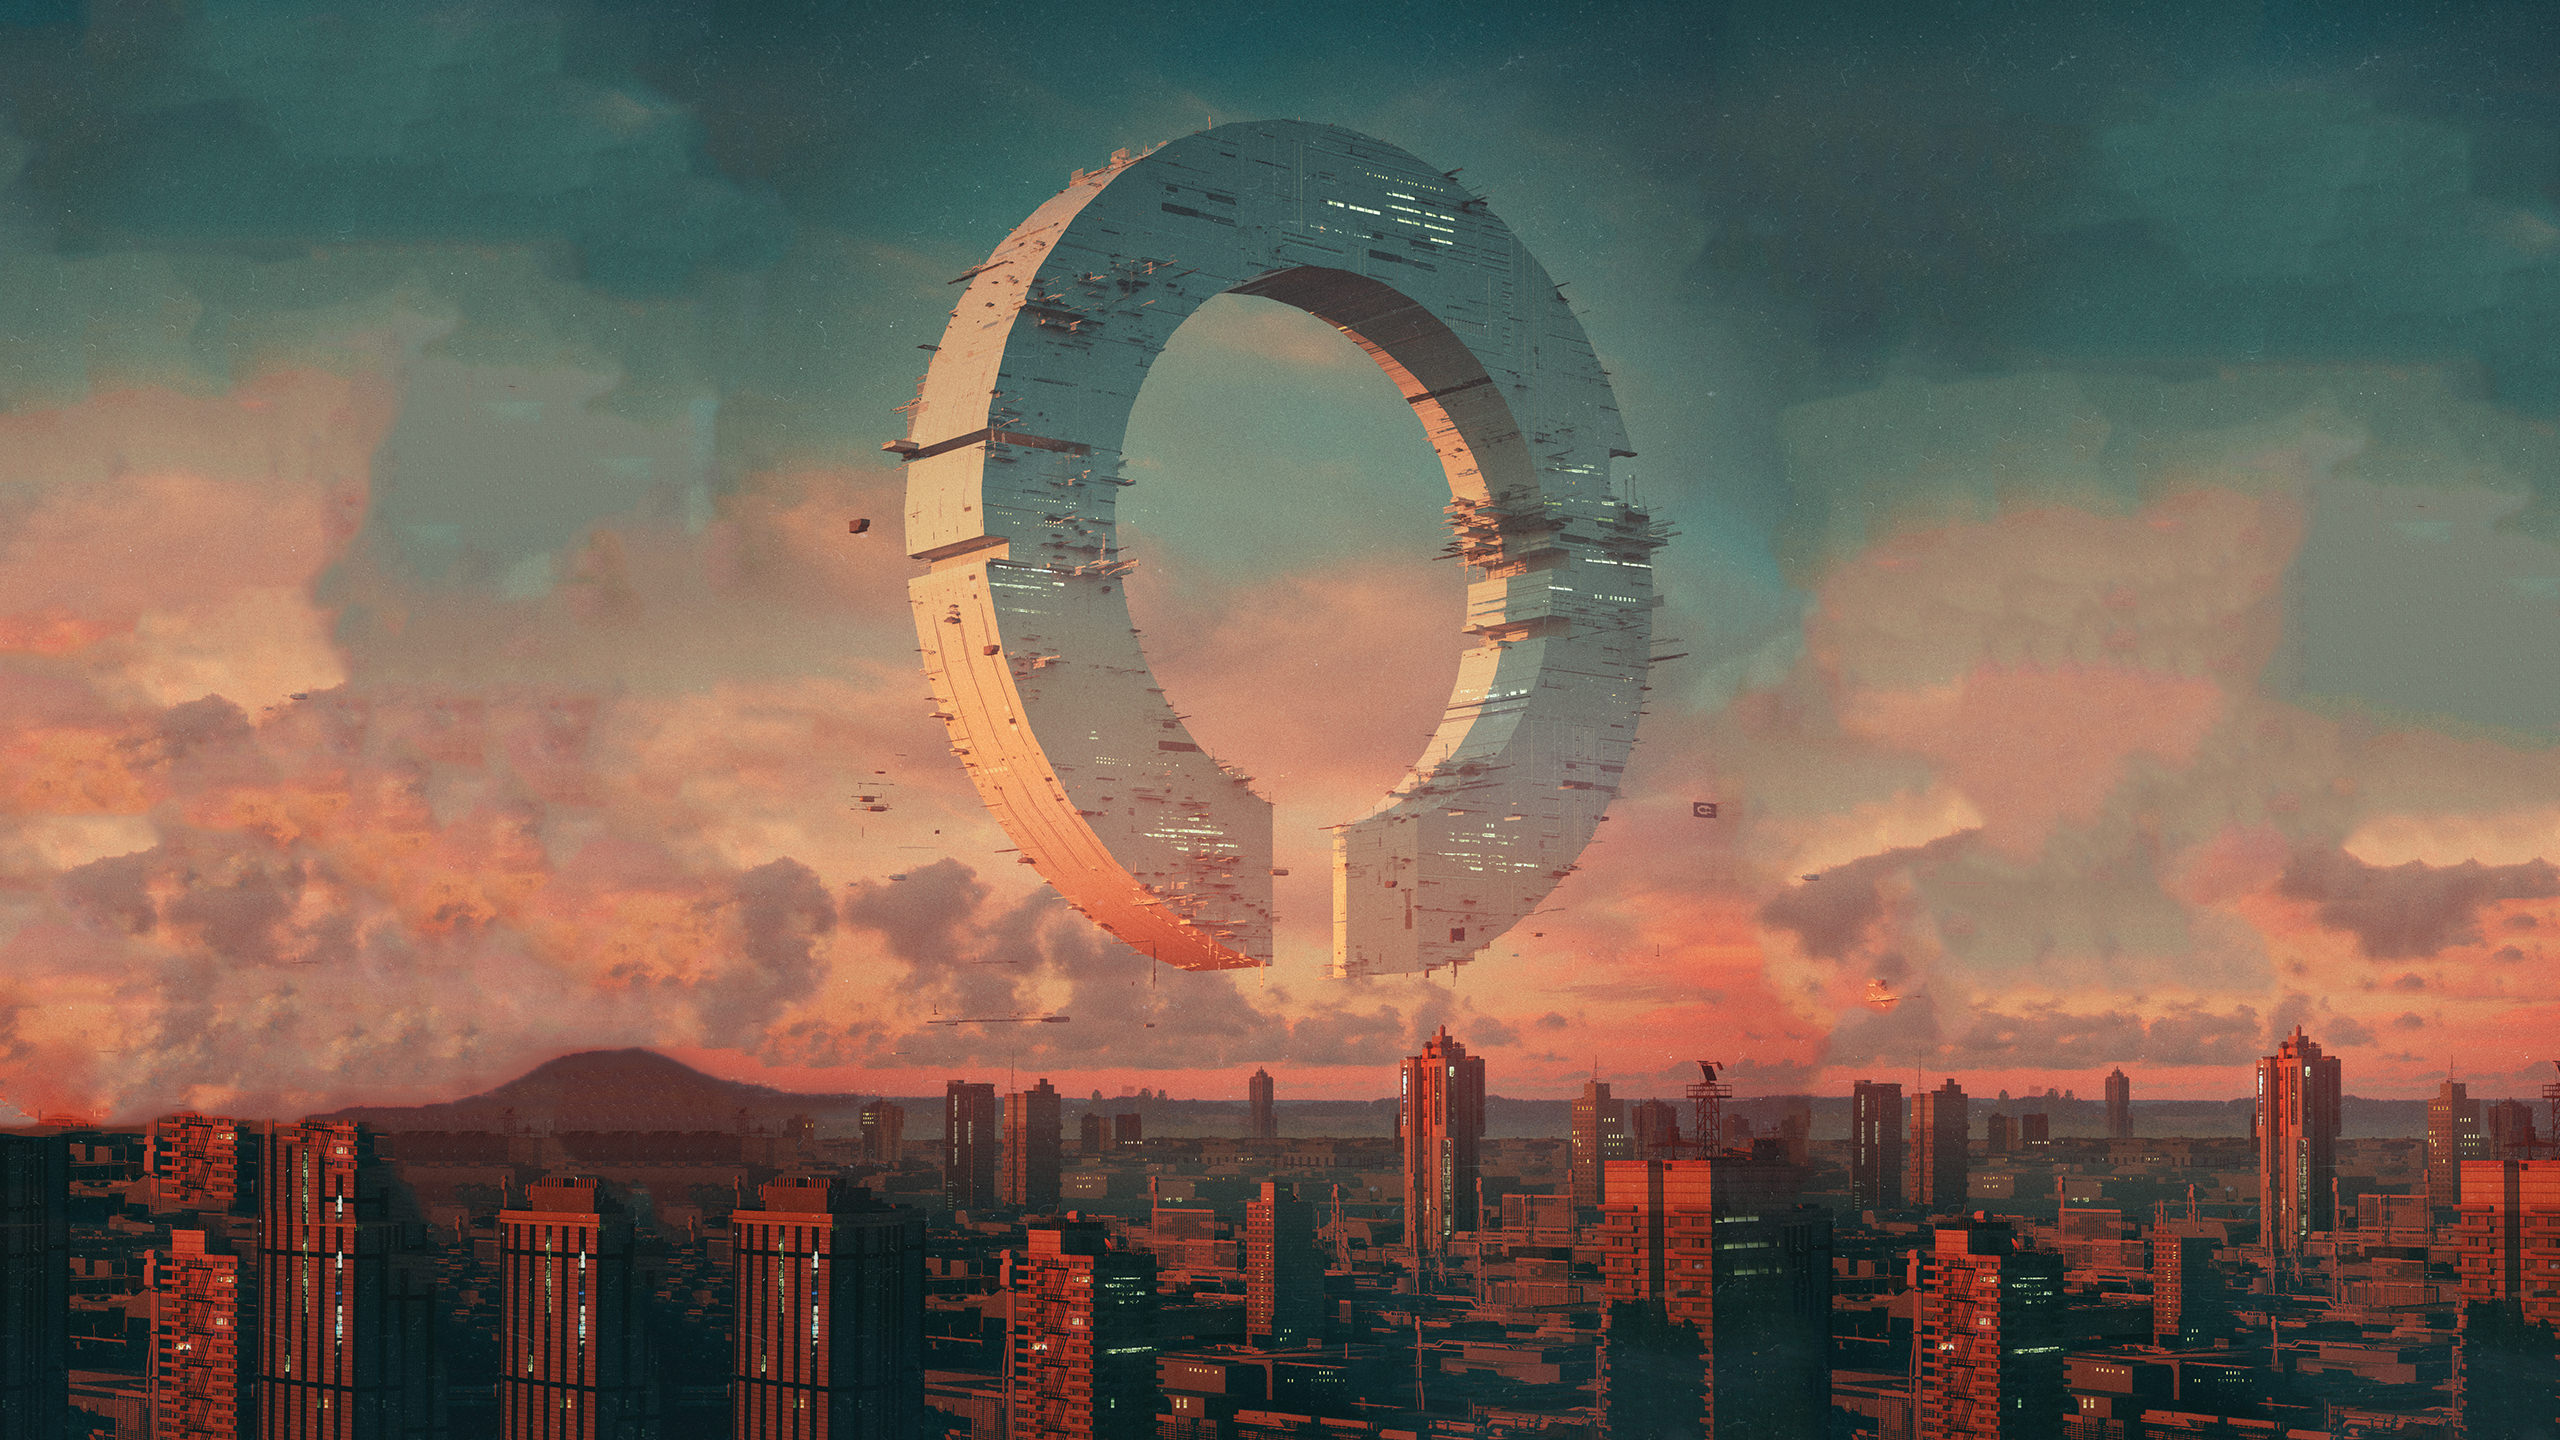 General 2560x1440 beeple city futuristic fictional artwork building science fiction architecture sky